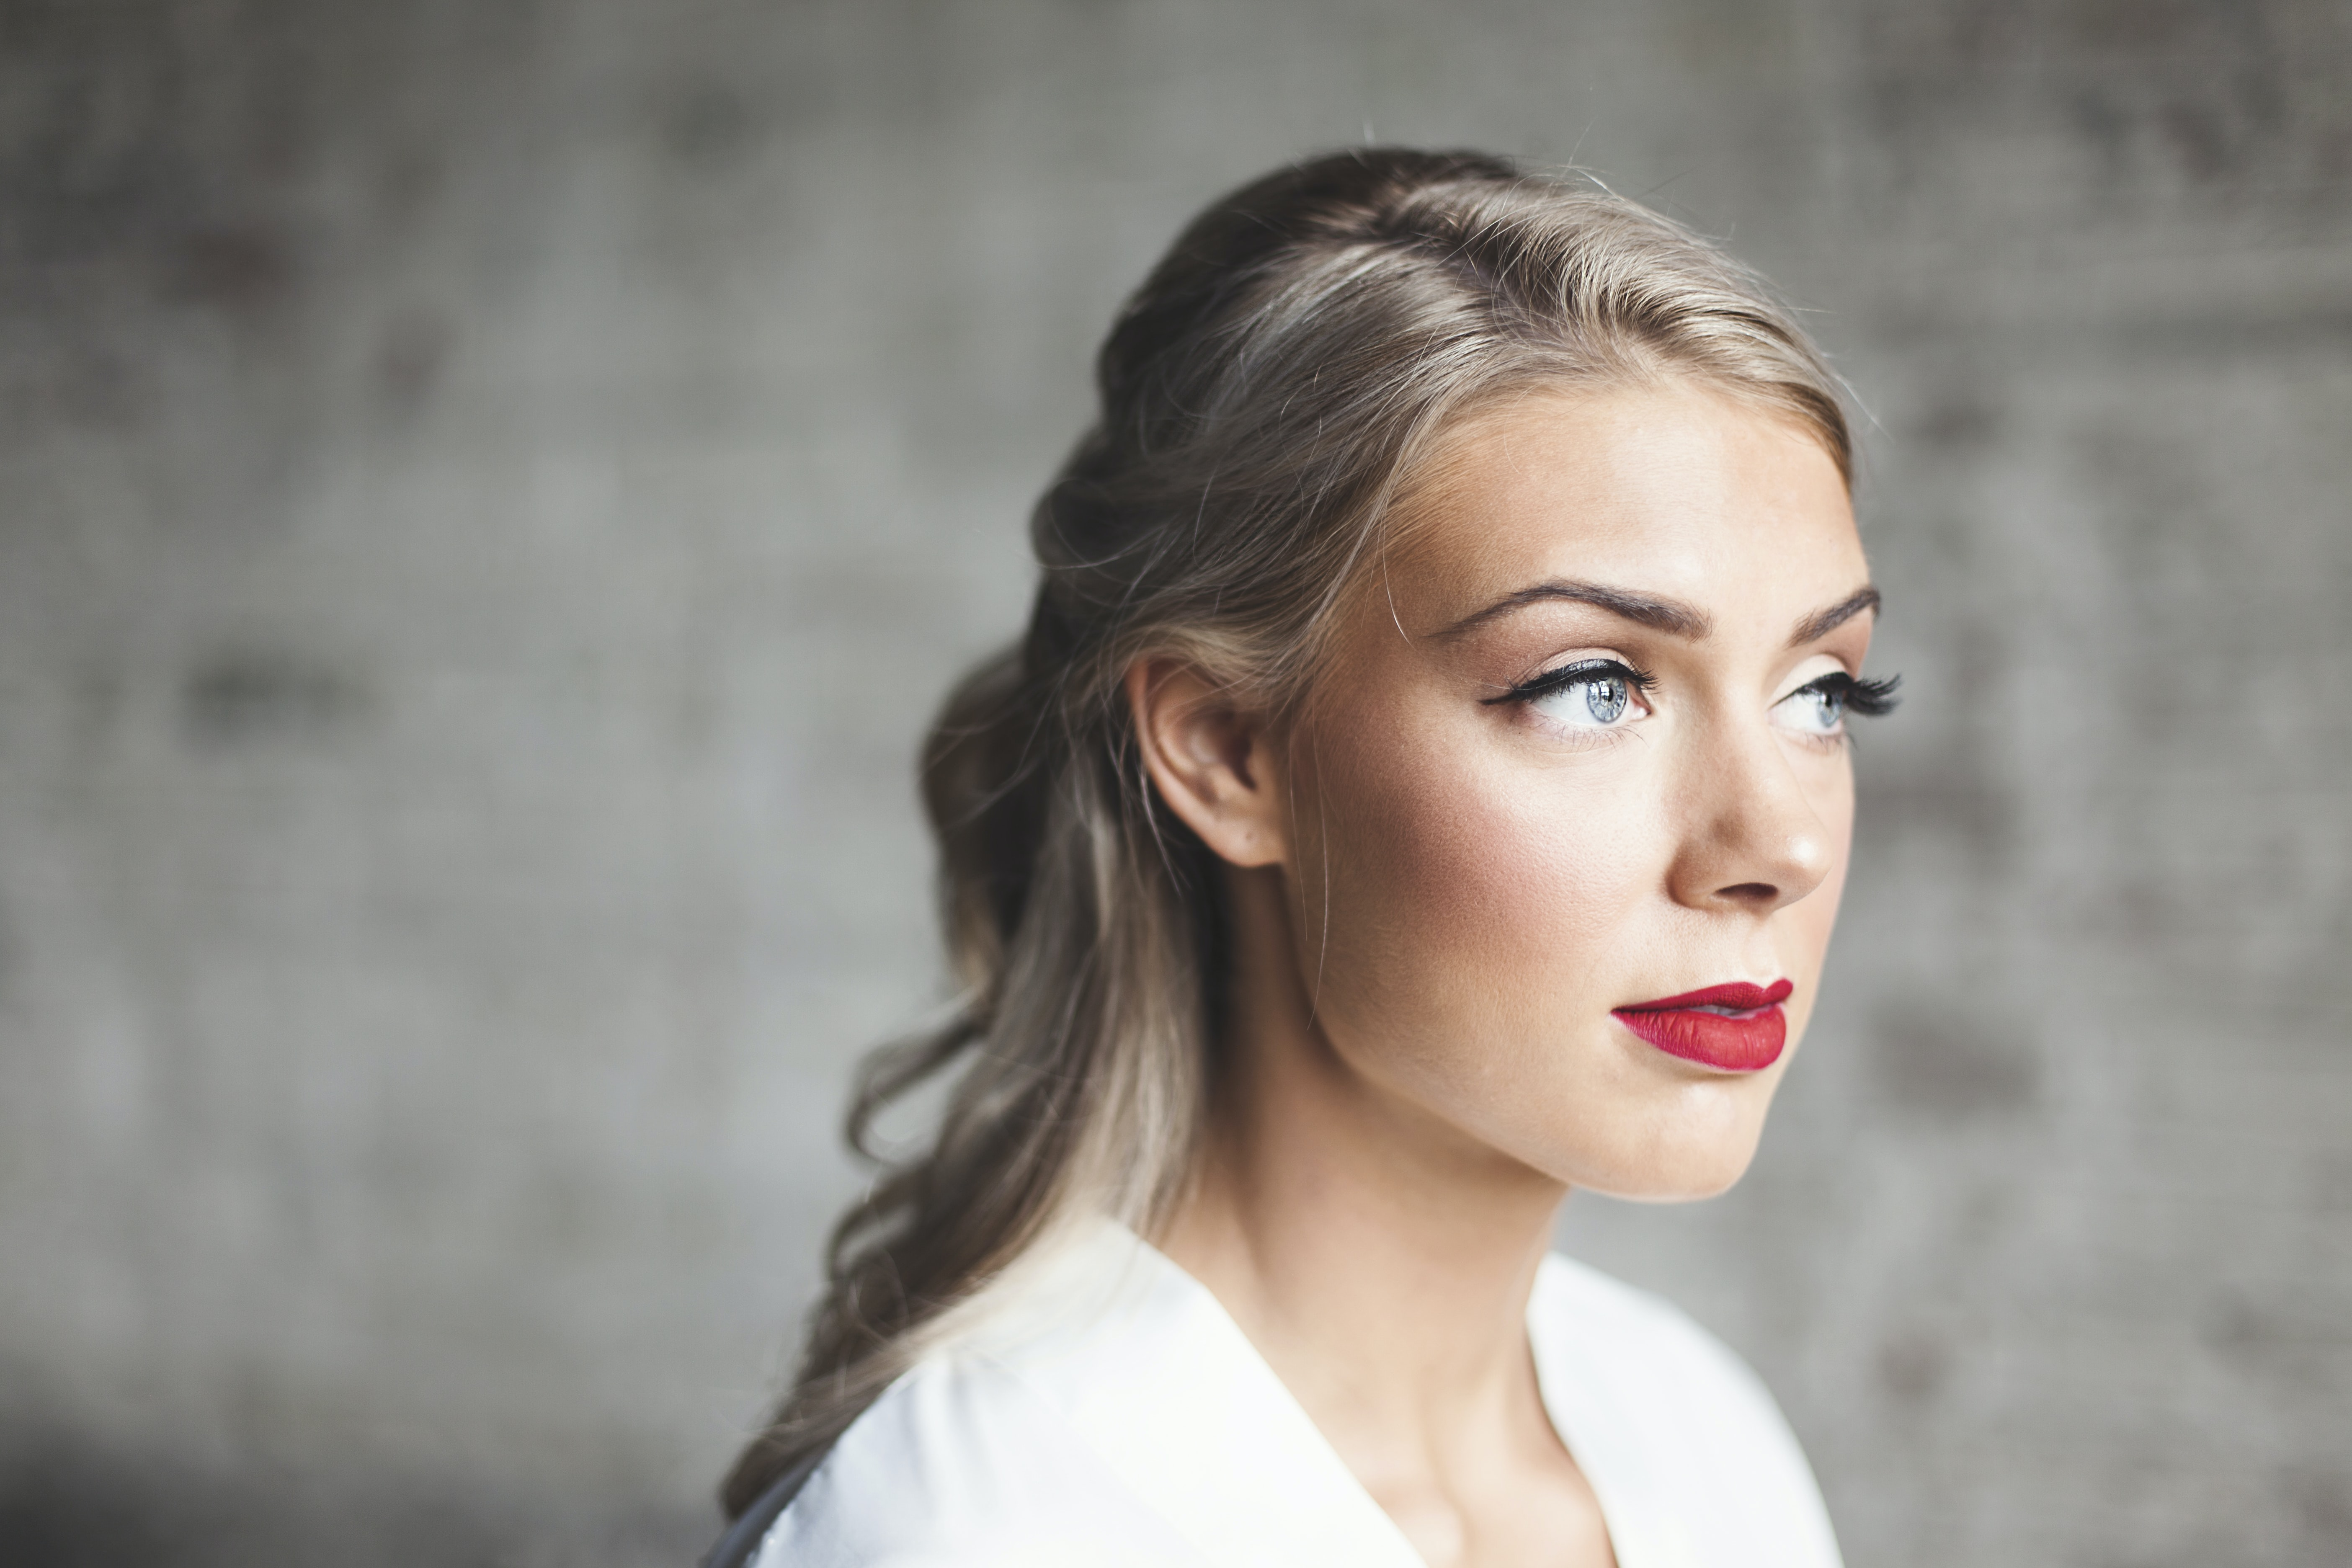 Woman in bridal makeup with a bold red lip